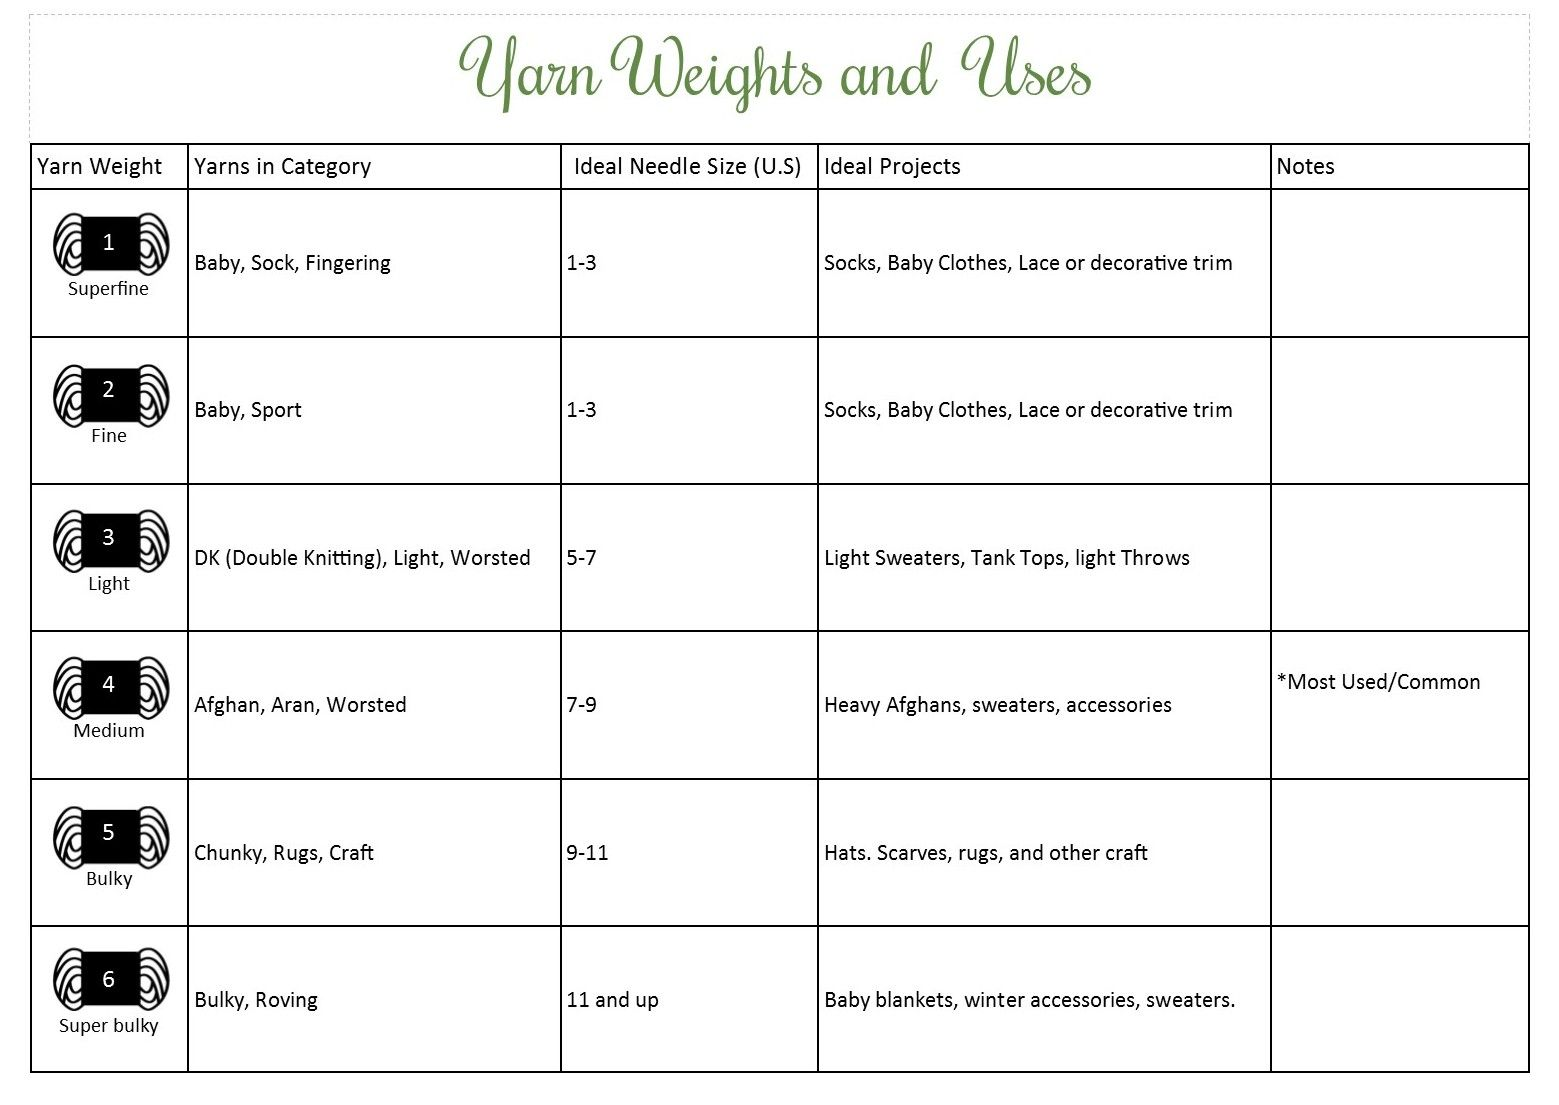 Yarn weights and ideal projects charts e1361288603570g 15591105 yarn weights and ideal projects charts nvjuhfo Gallery